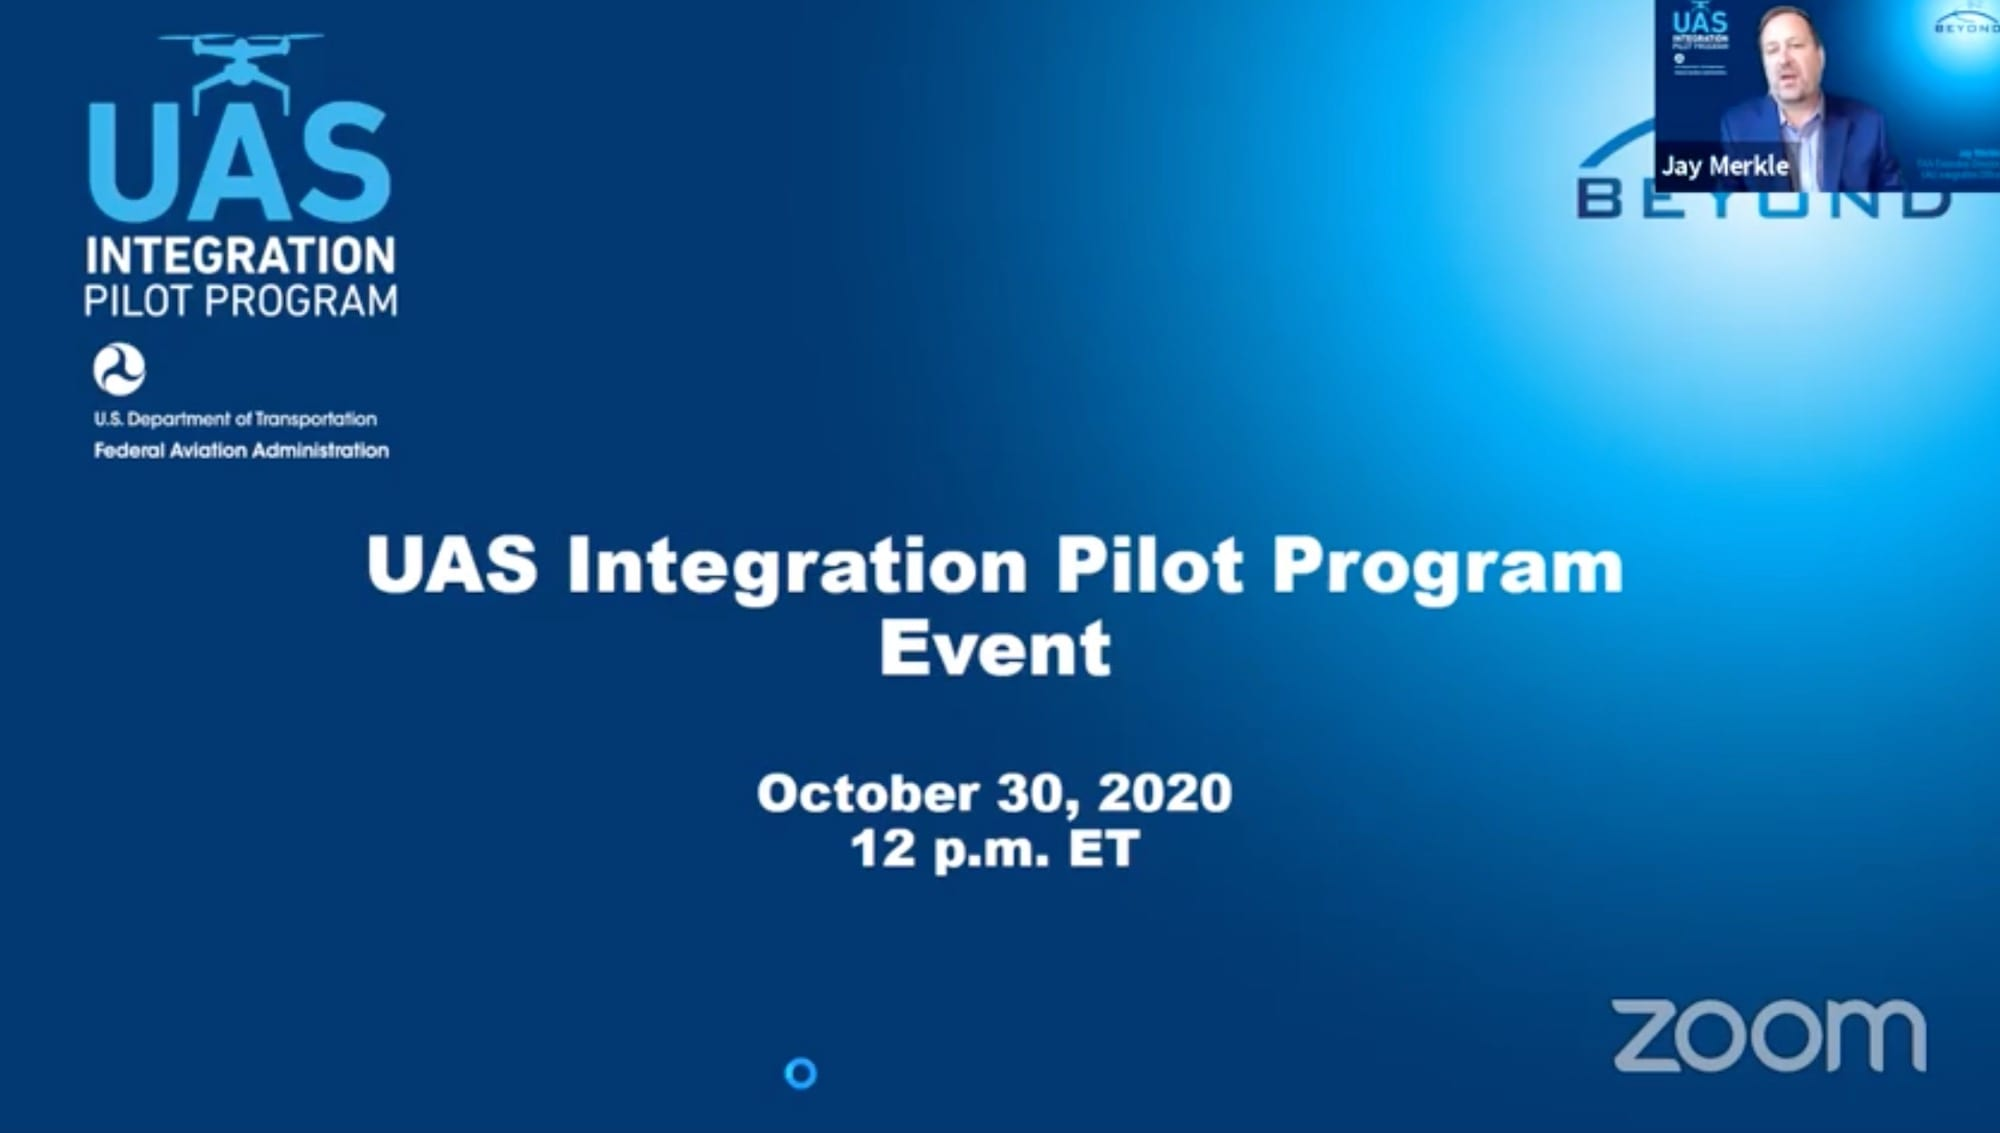 Beyond the FAA UAS Integration Pilot Program